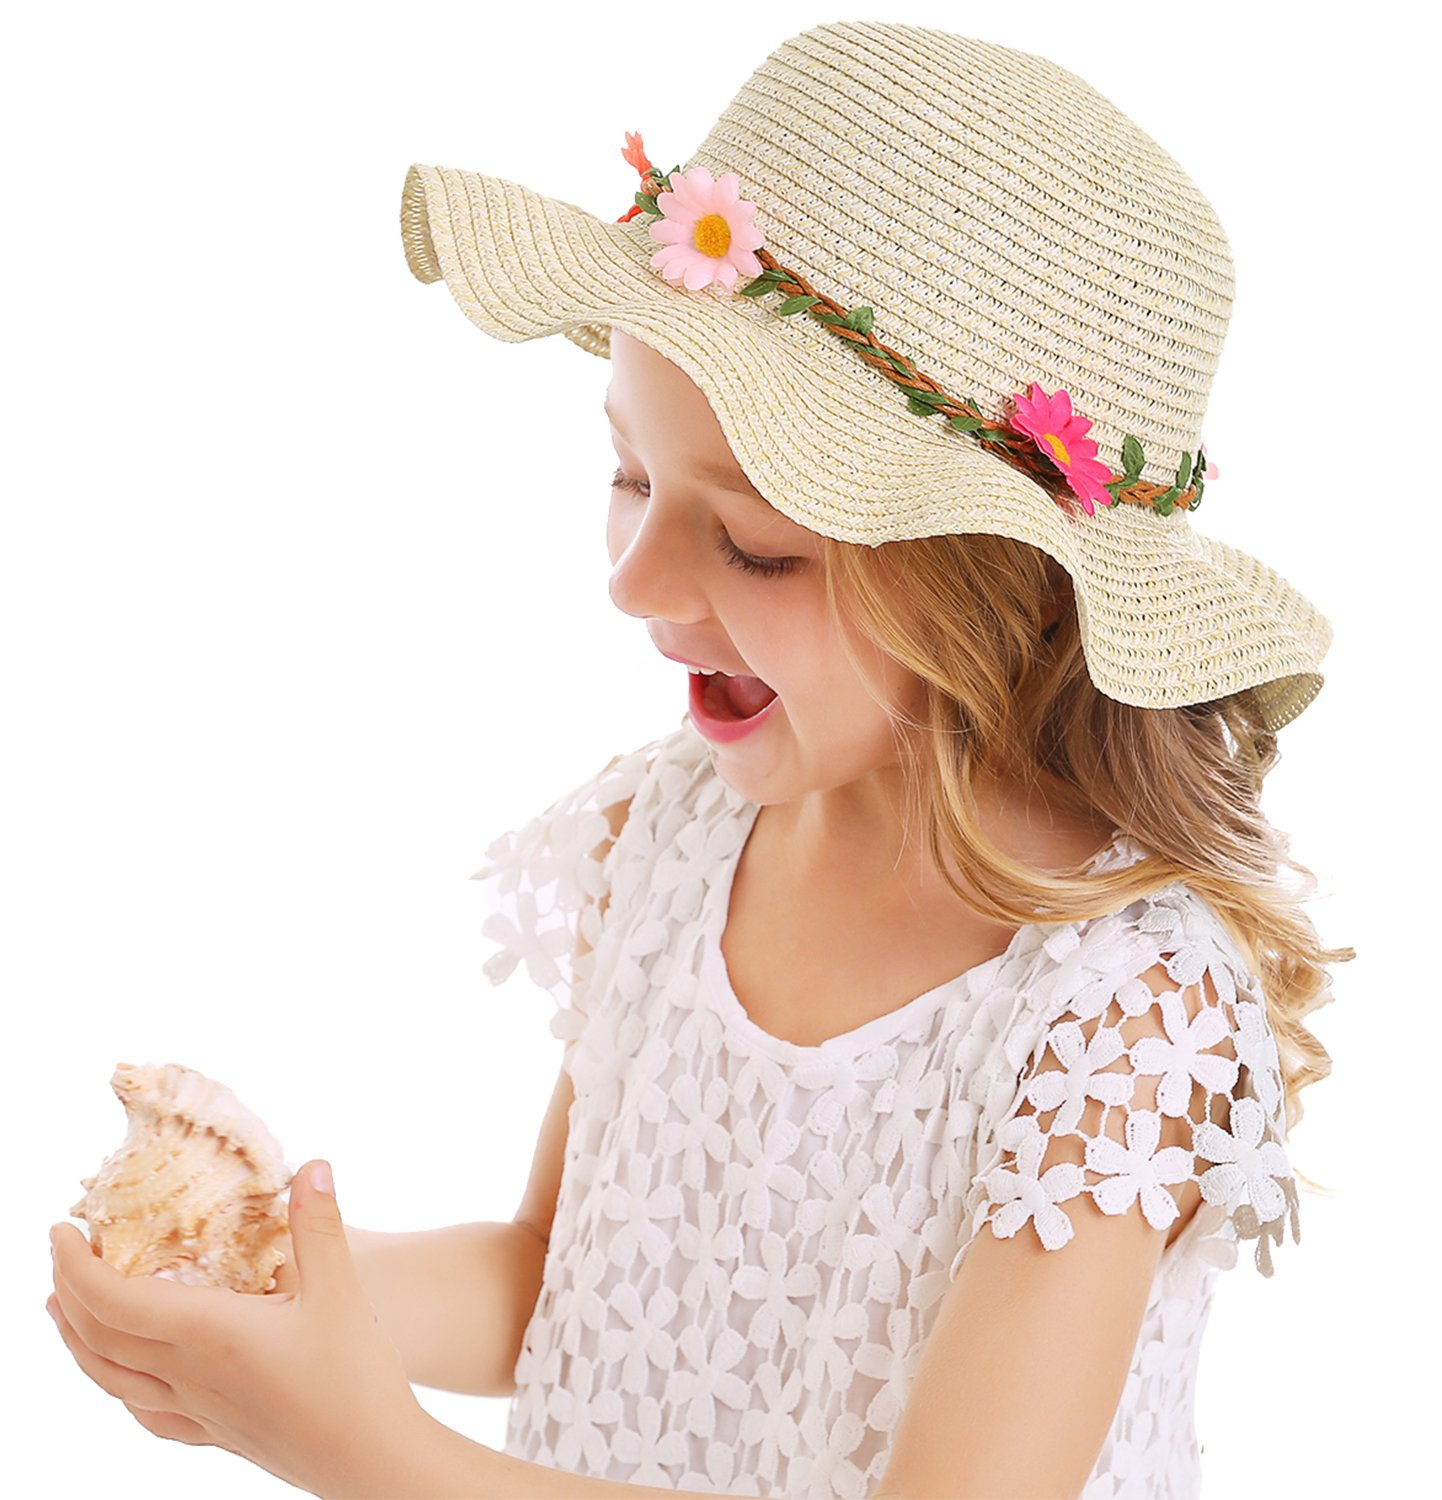 Bienvenu Sun Straw Hat Kids Girls Large Wide Brim Travel Beach Beanie Cap,Beige by Bienvenu (Image #6)